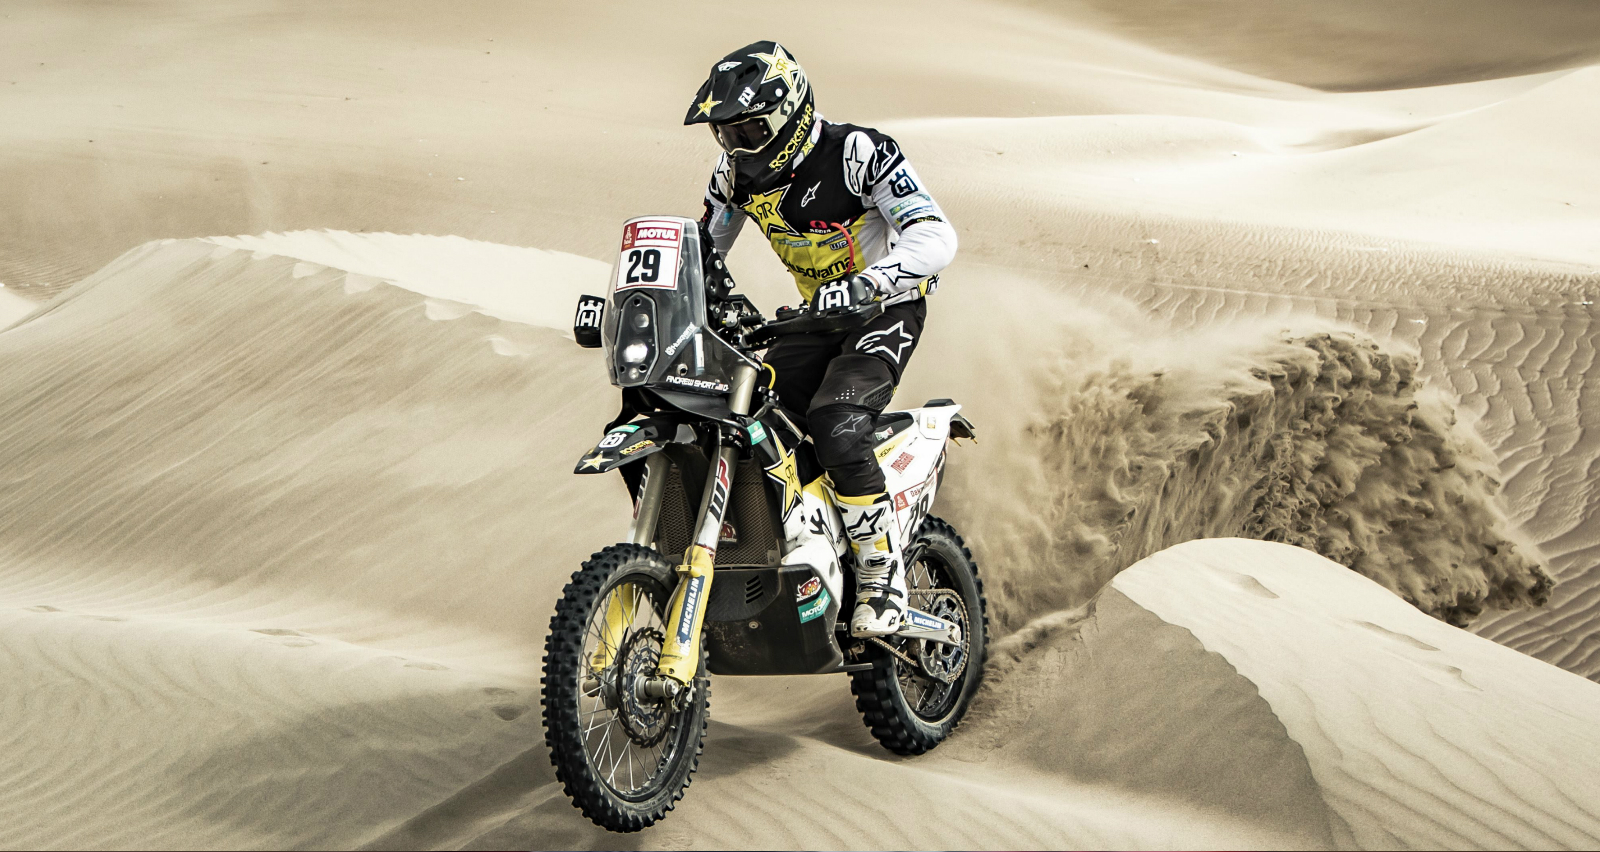 Andrew Short Inside Top 5 at Dakar's Stage 8